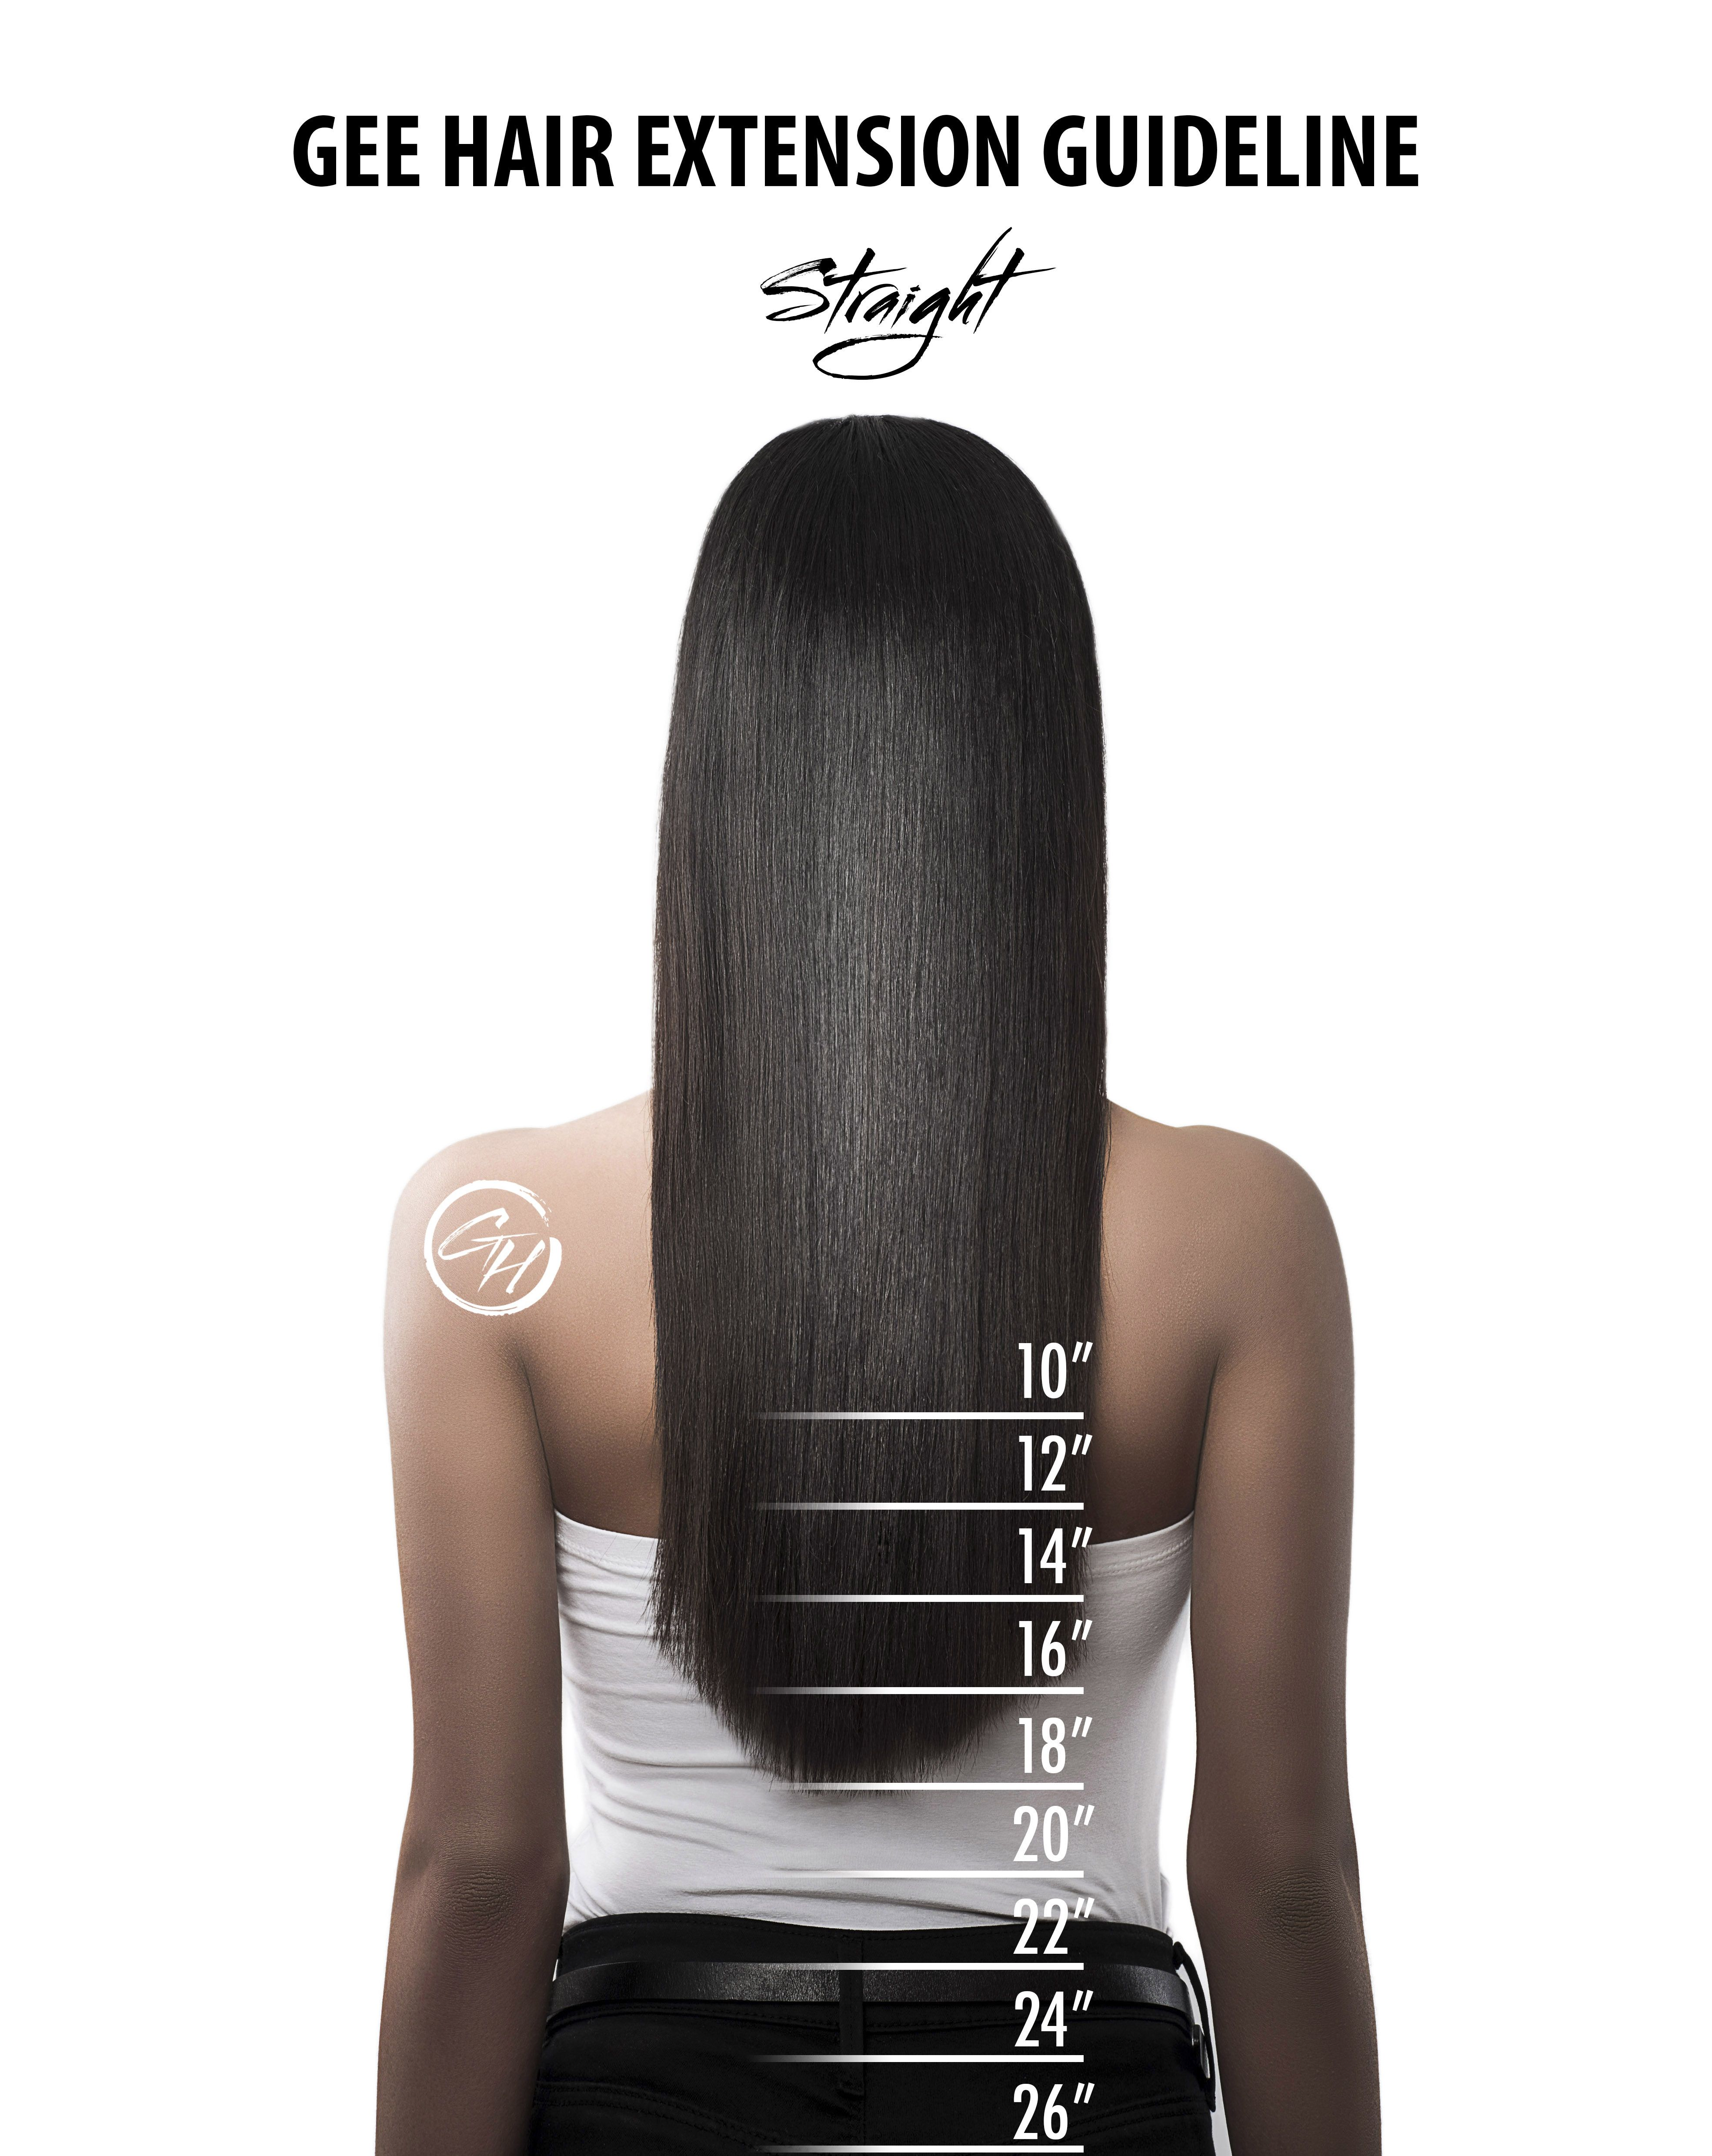 Check out our hair extension guideline whats your desired check out our hair extension guideline whats your desired length new lengths coming soon pmusecretfo Gallery